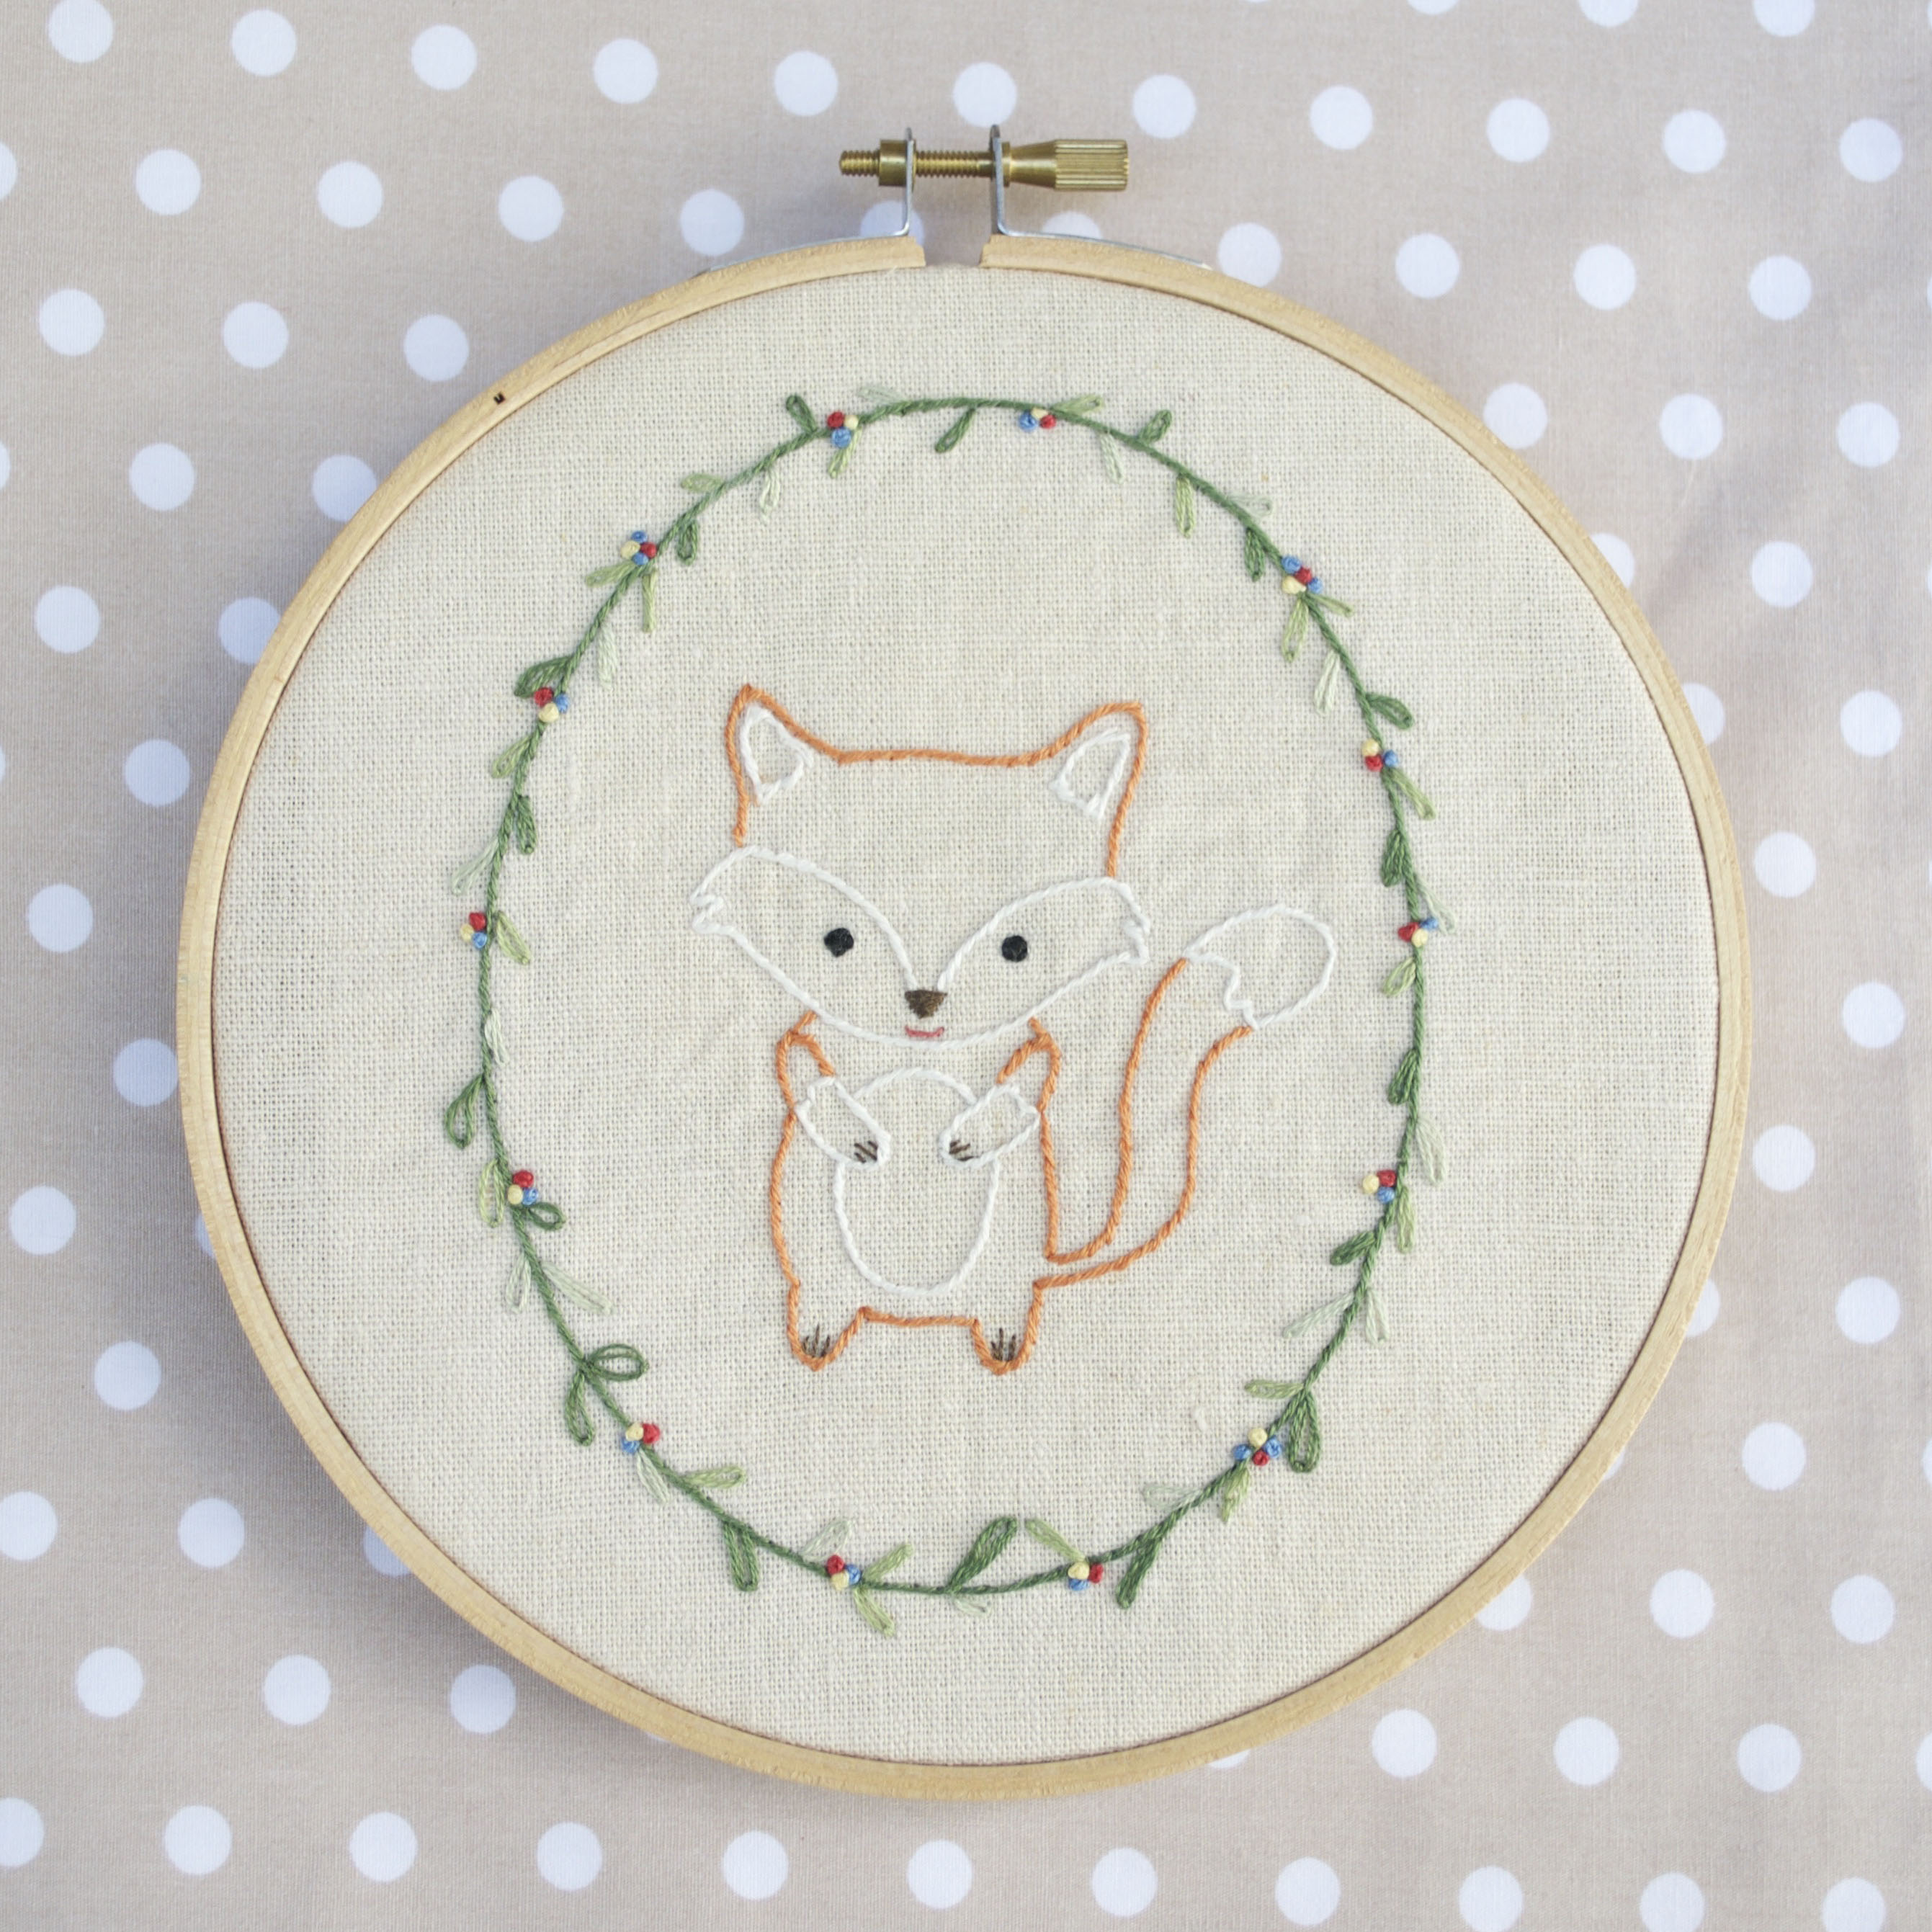 Little Fox Hand Embroidery Pdf Pattern Instructions